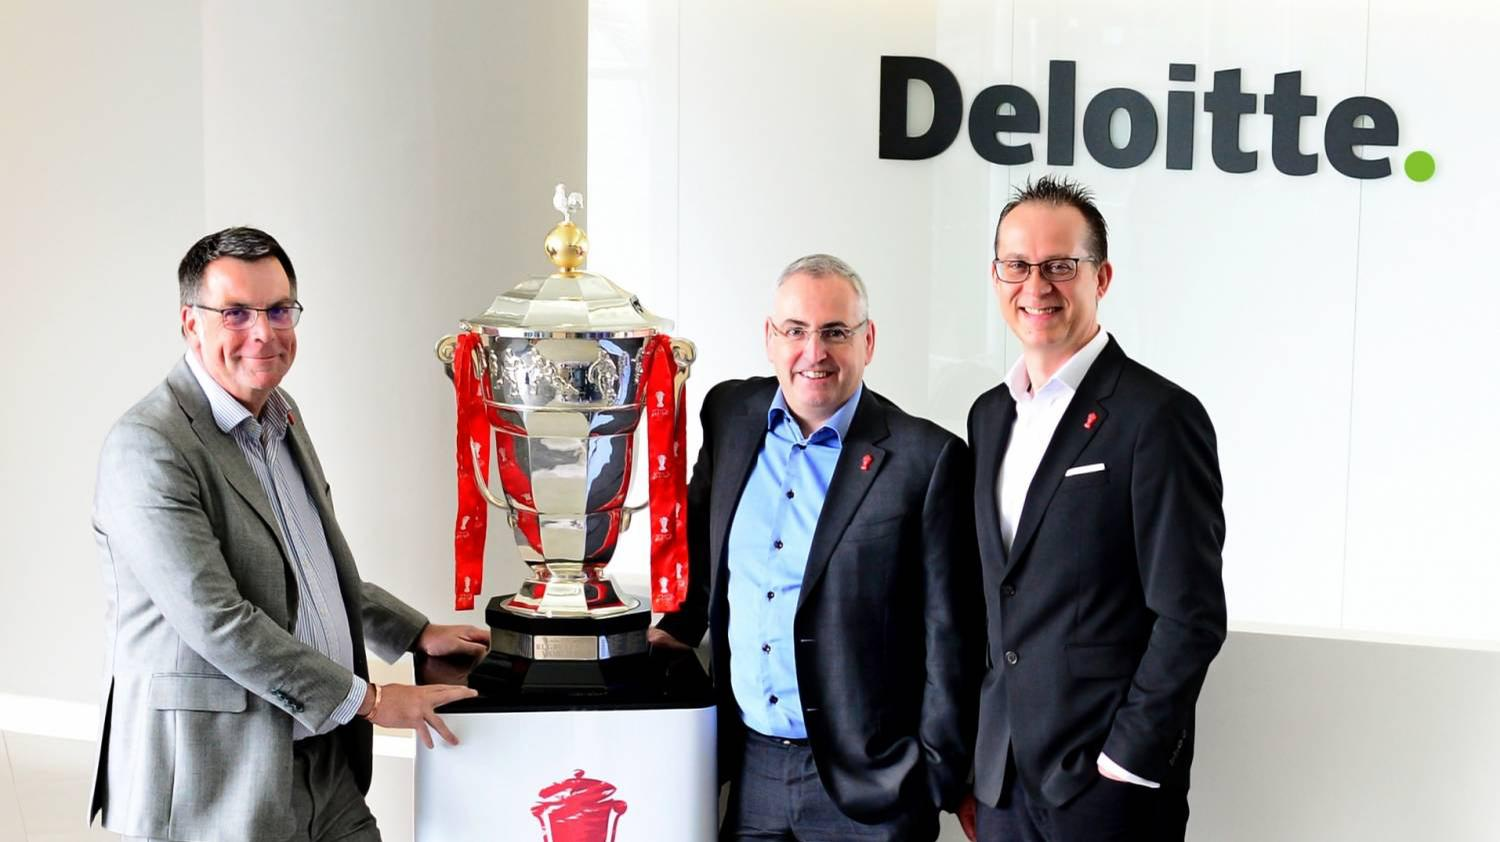 Deloitte's Stuart Cottee (left) and Sean Beech (middle) with RLWC 2021 CEO Jon Dutton (right)